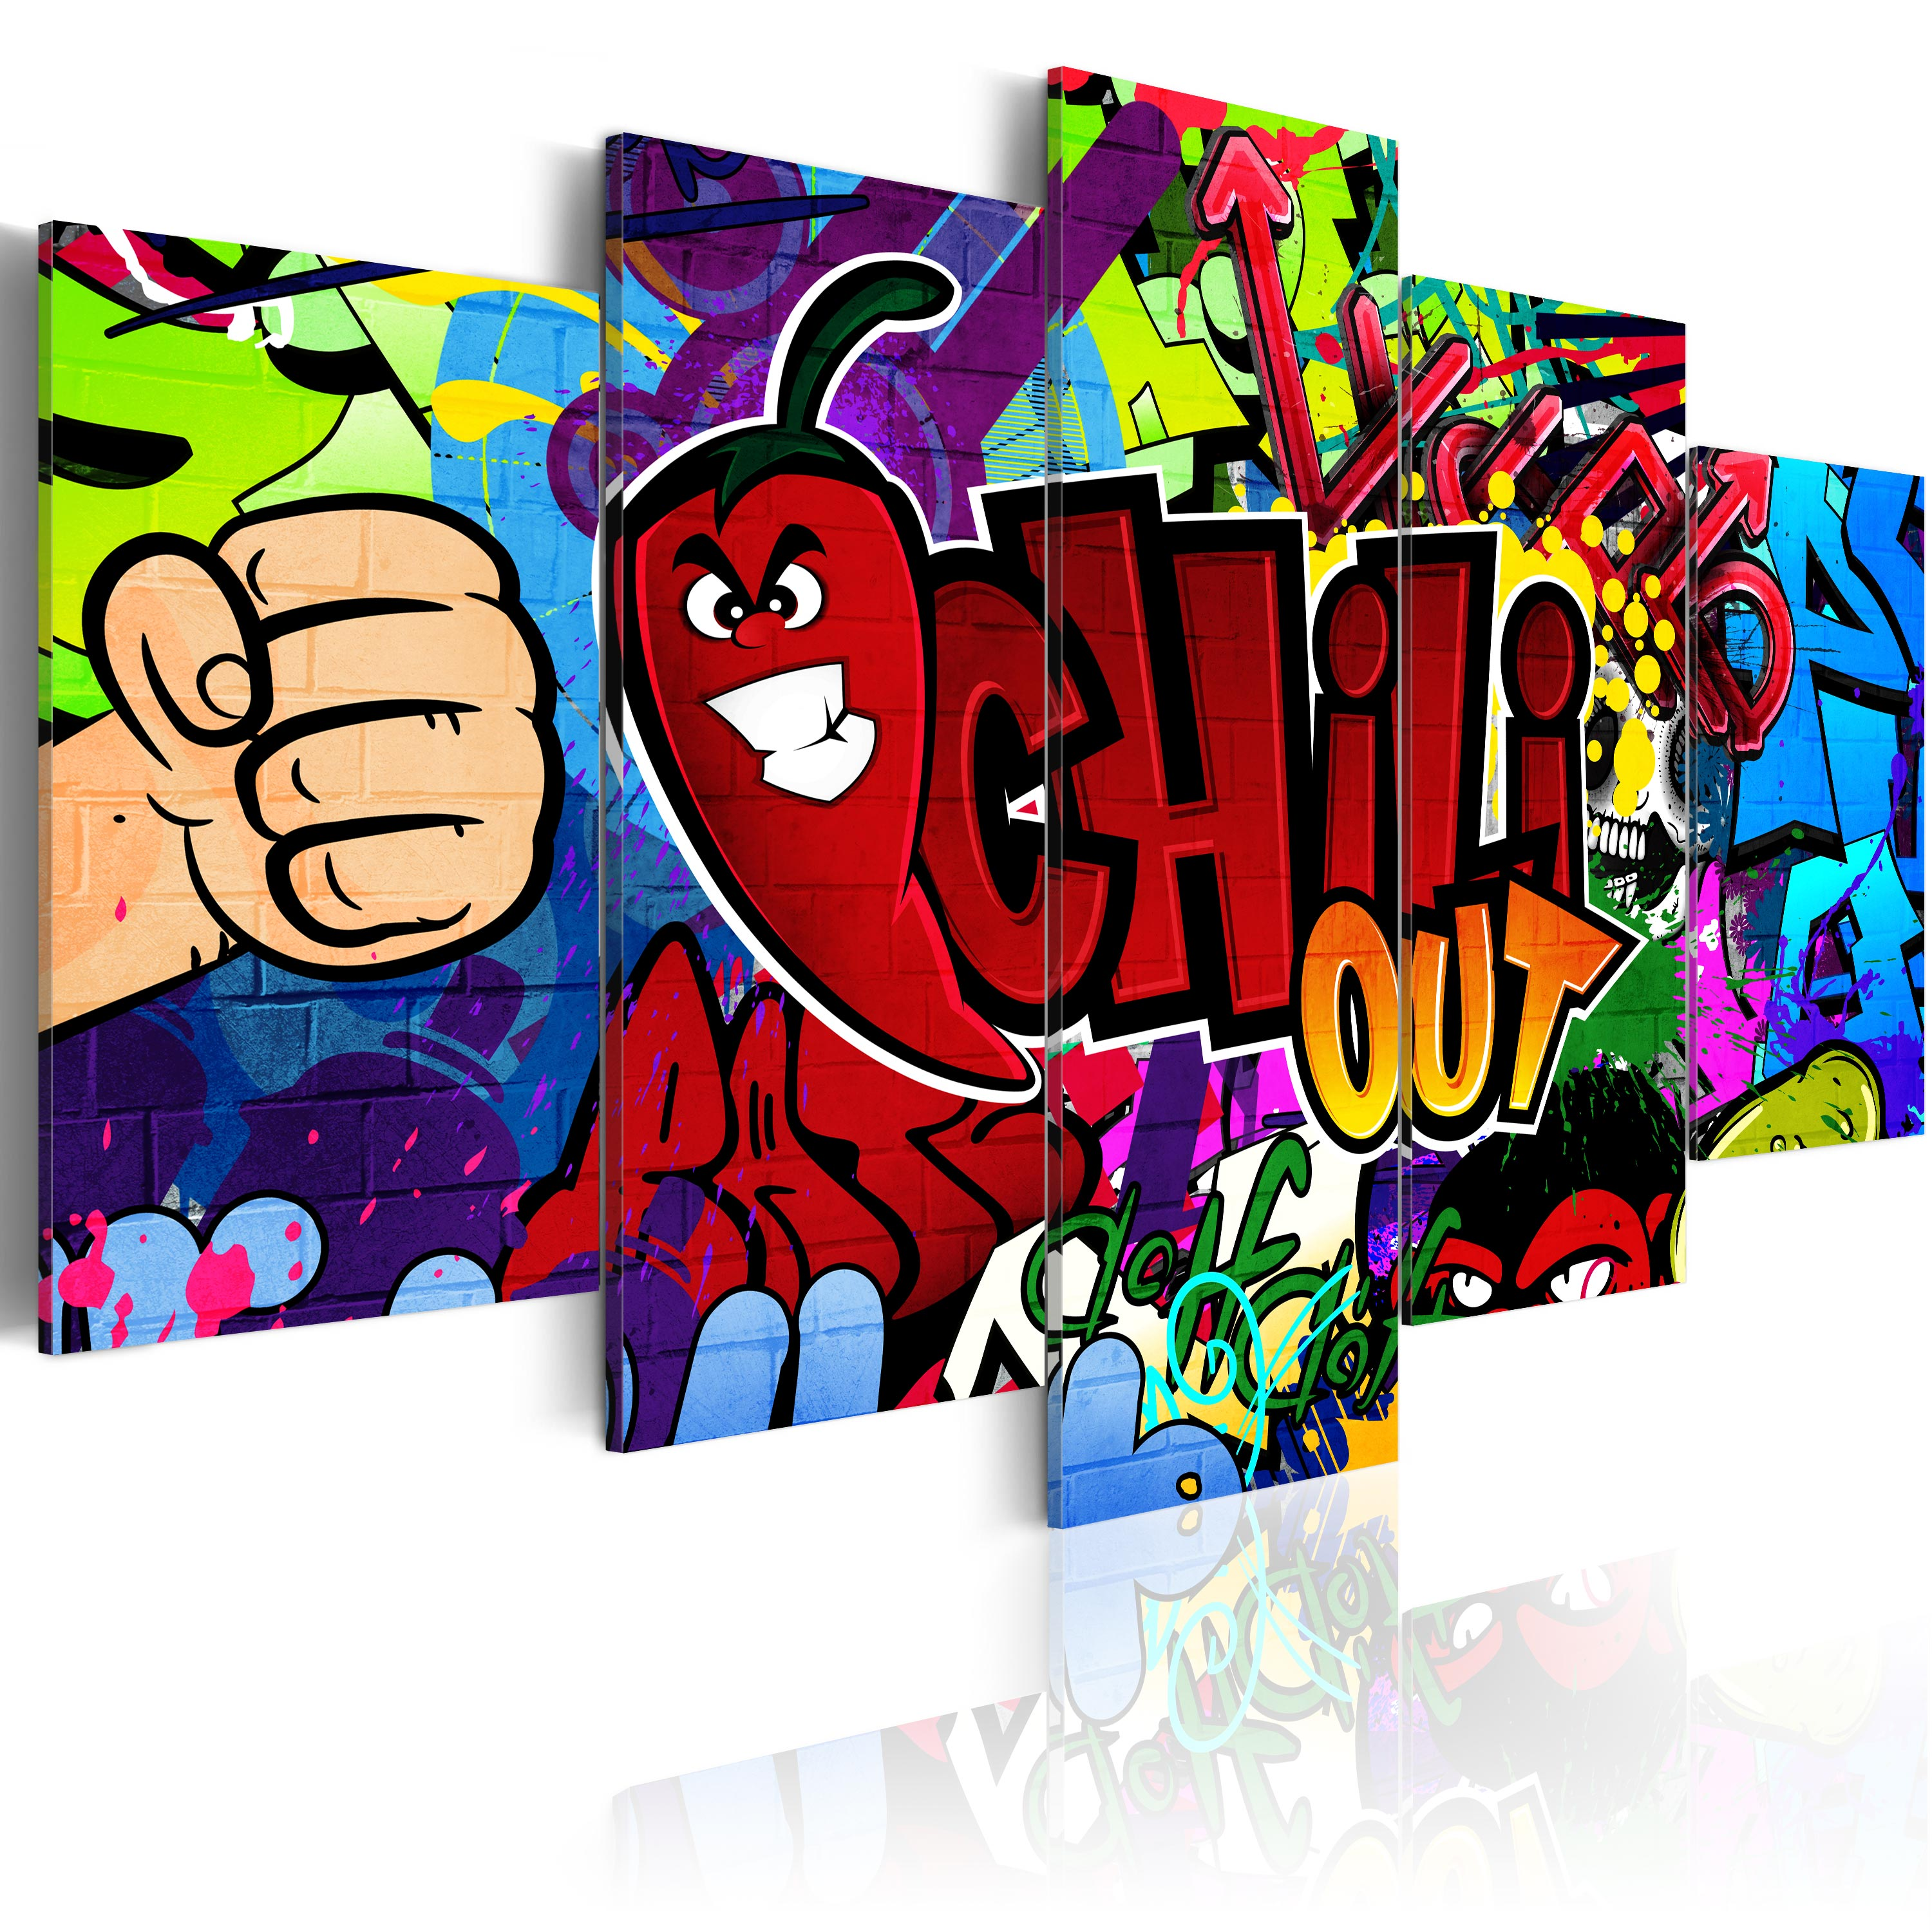 leinwand bilder xxl kunstdruck wandbild graffiti street art chili 020115 41 ebay. Black Bedroom Furniture Sets. Home Design Ideas